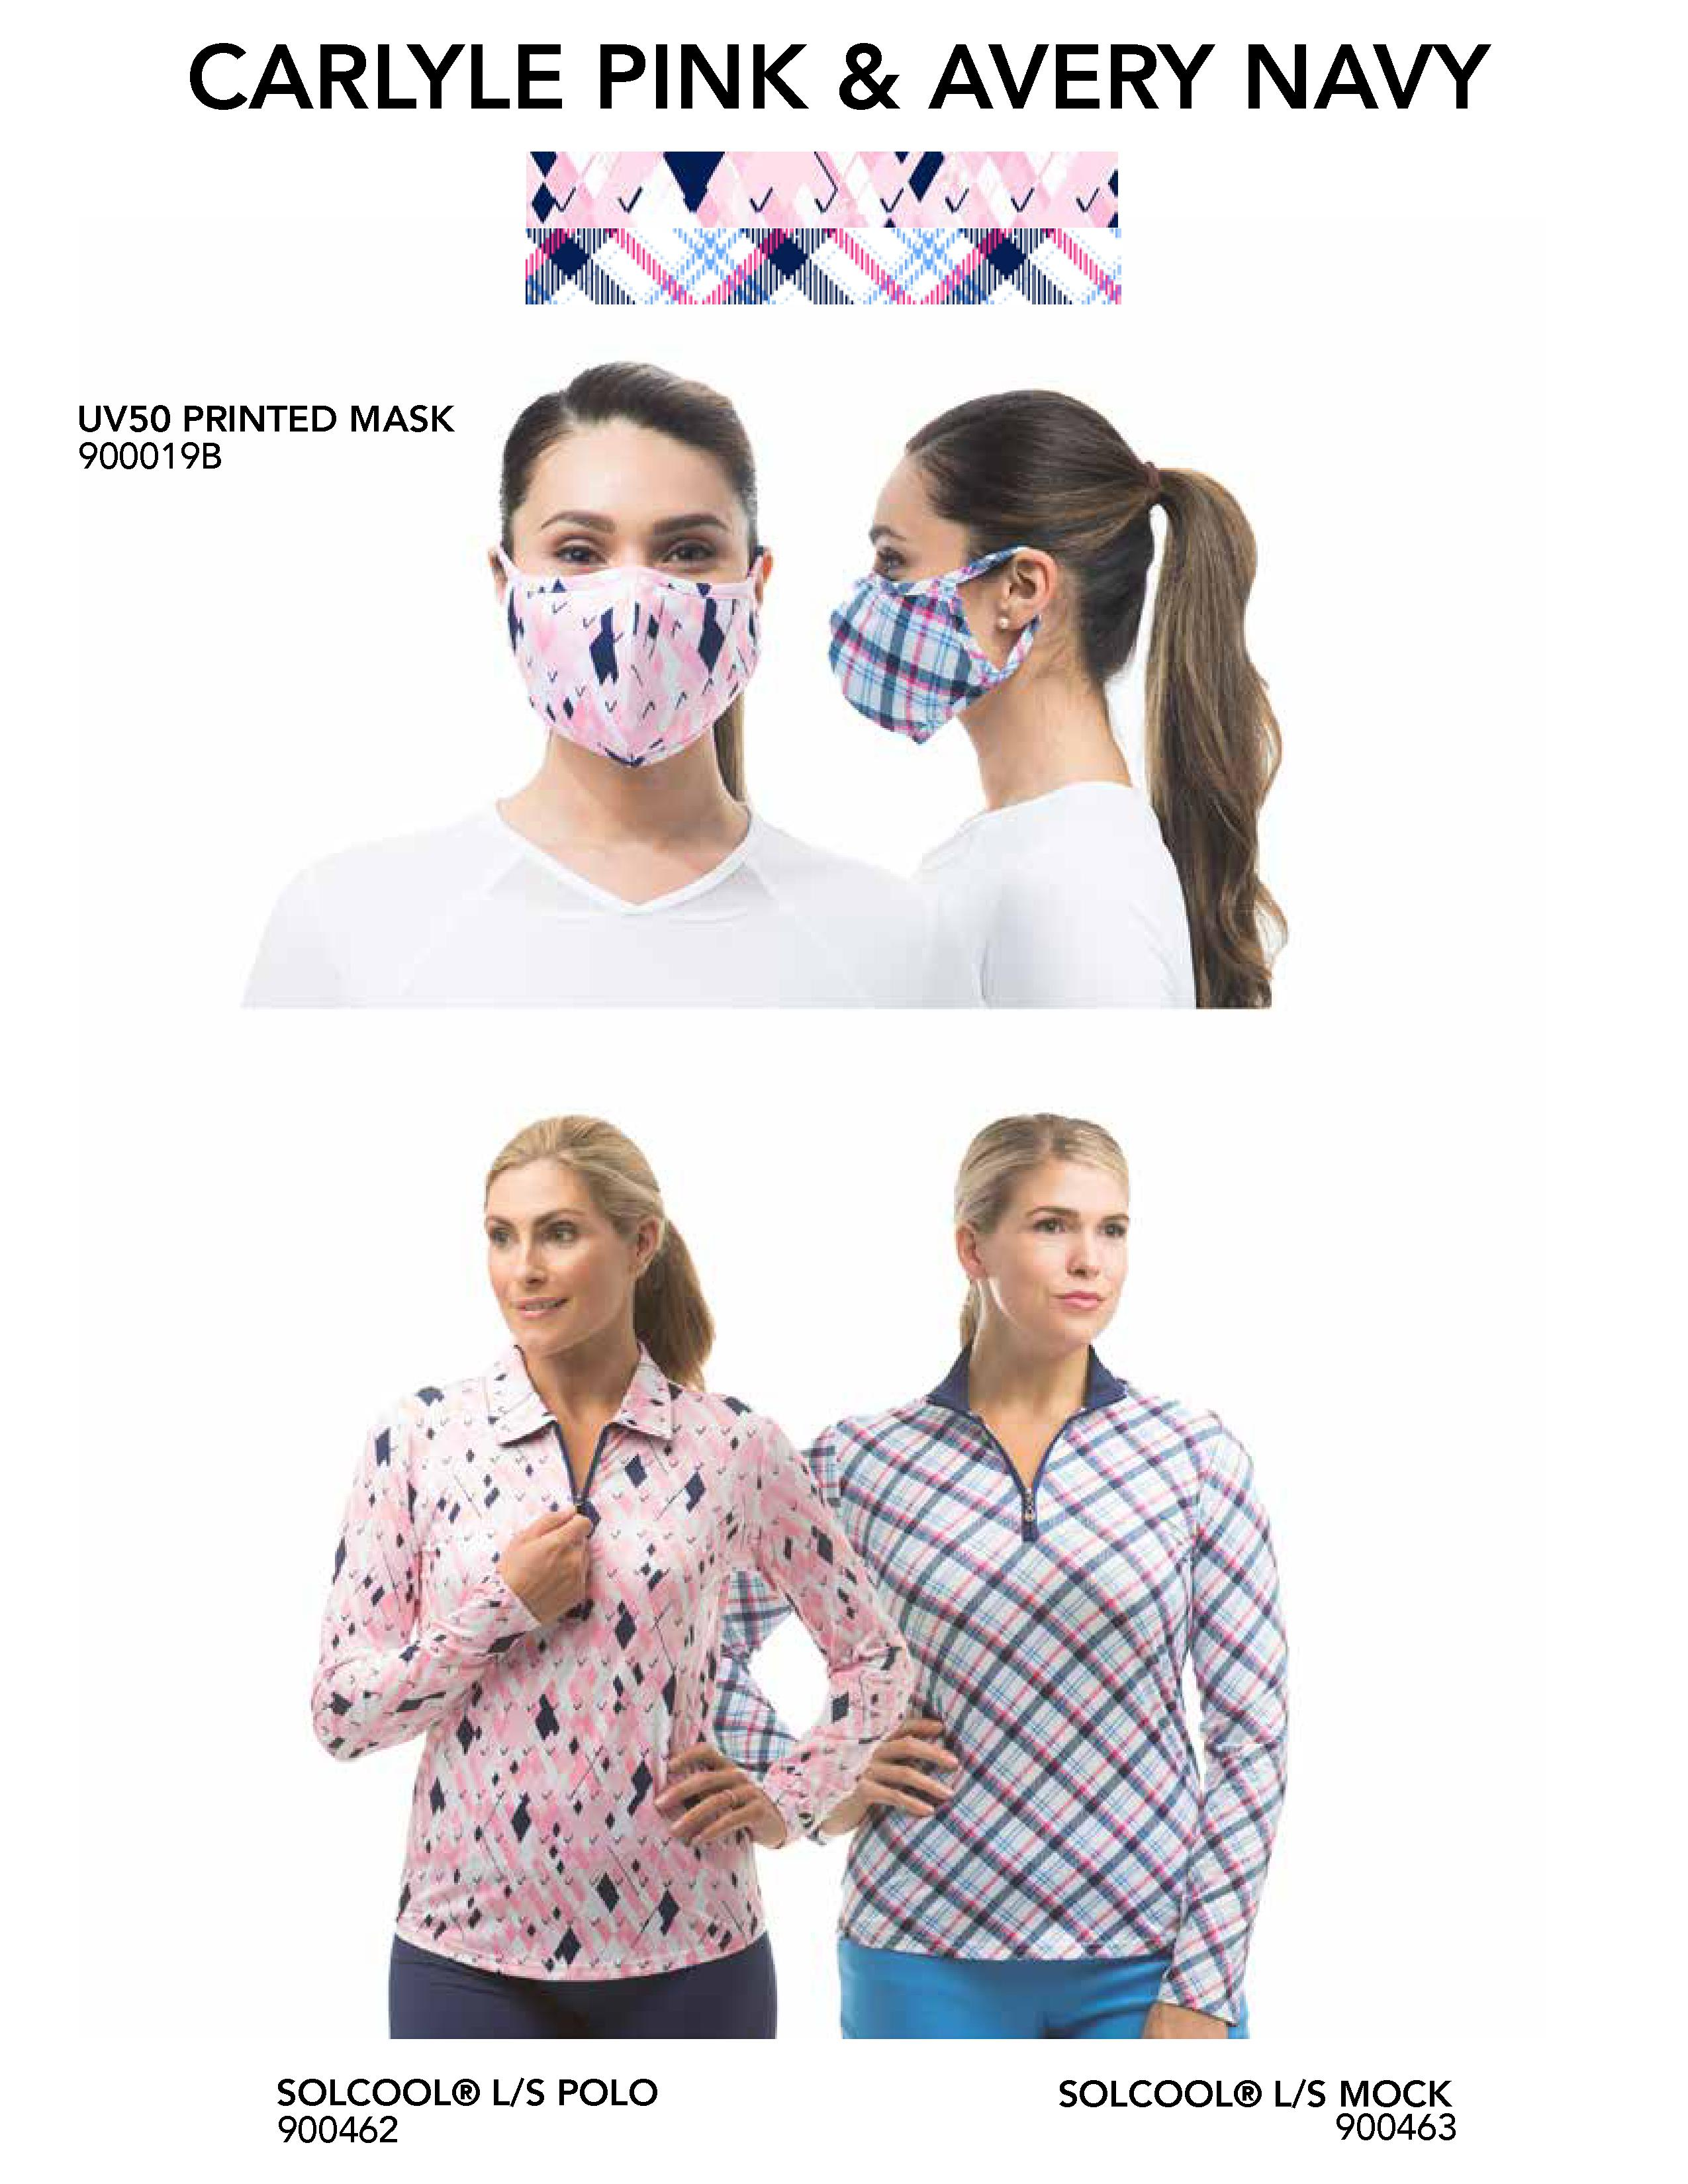 900919 AVYNA/CARLP Mask/Top Bundle-900462 Carlyle Pink and 900463 Avery Navy